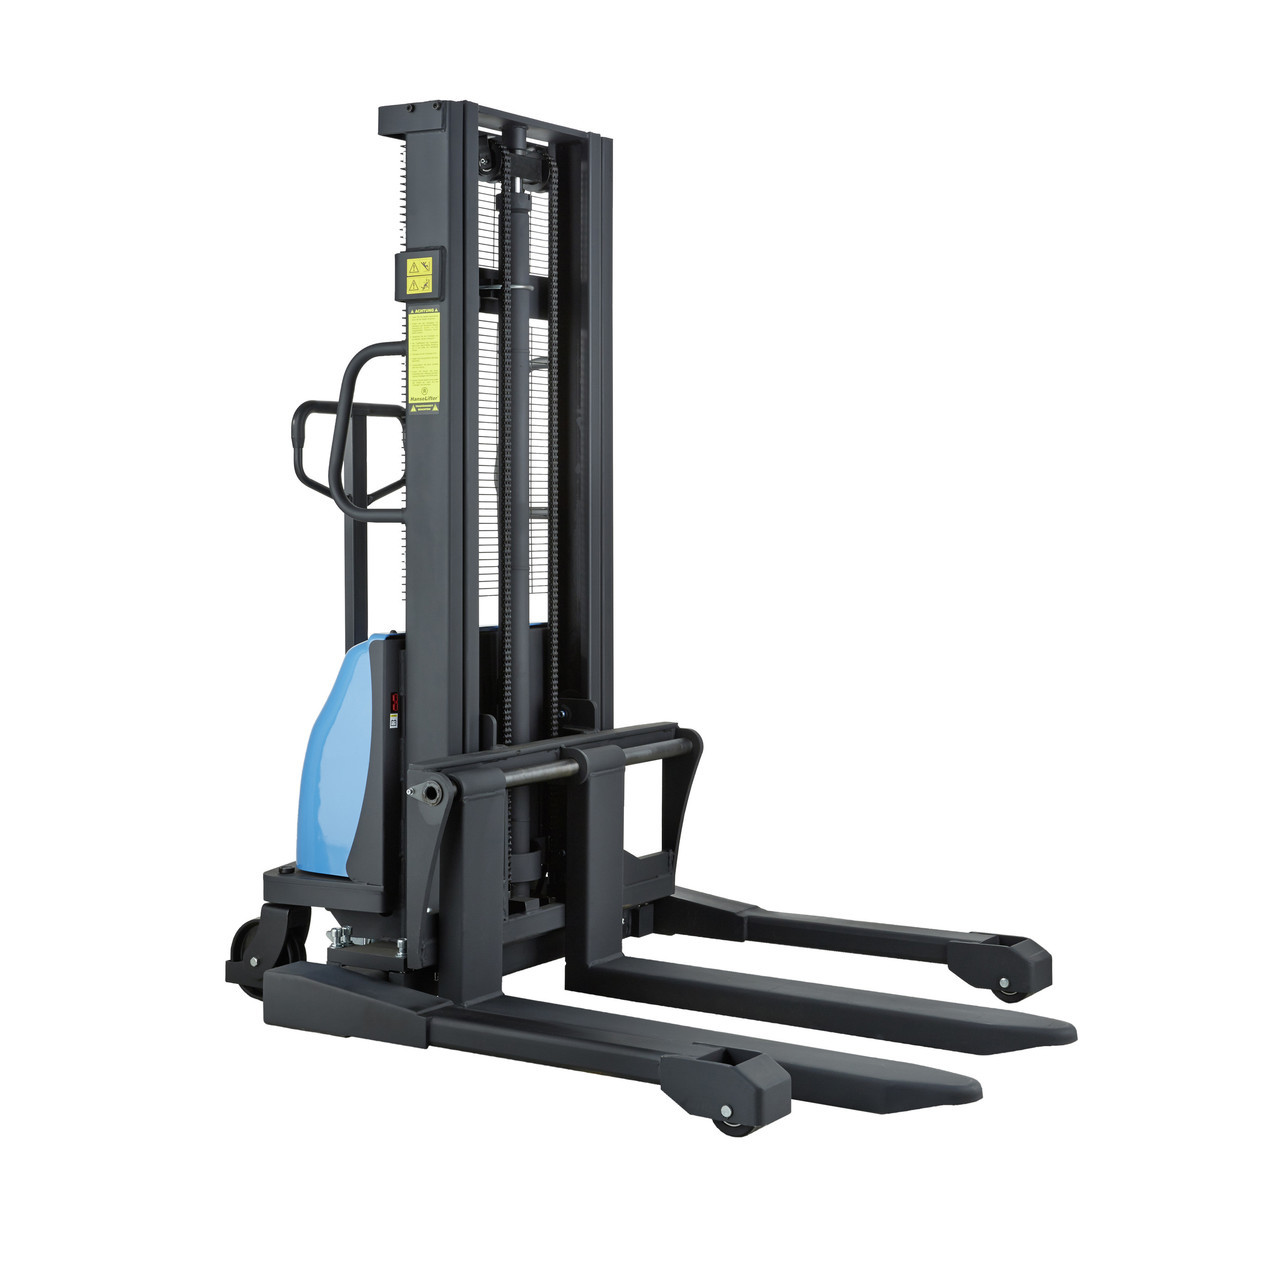 2 Ton Walk Behind Pallet Stacker Electric Forklift Price 1: Semi-Electric Straddle Pallet Stacker Lifting Up To 1500kg